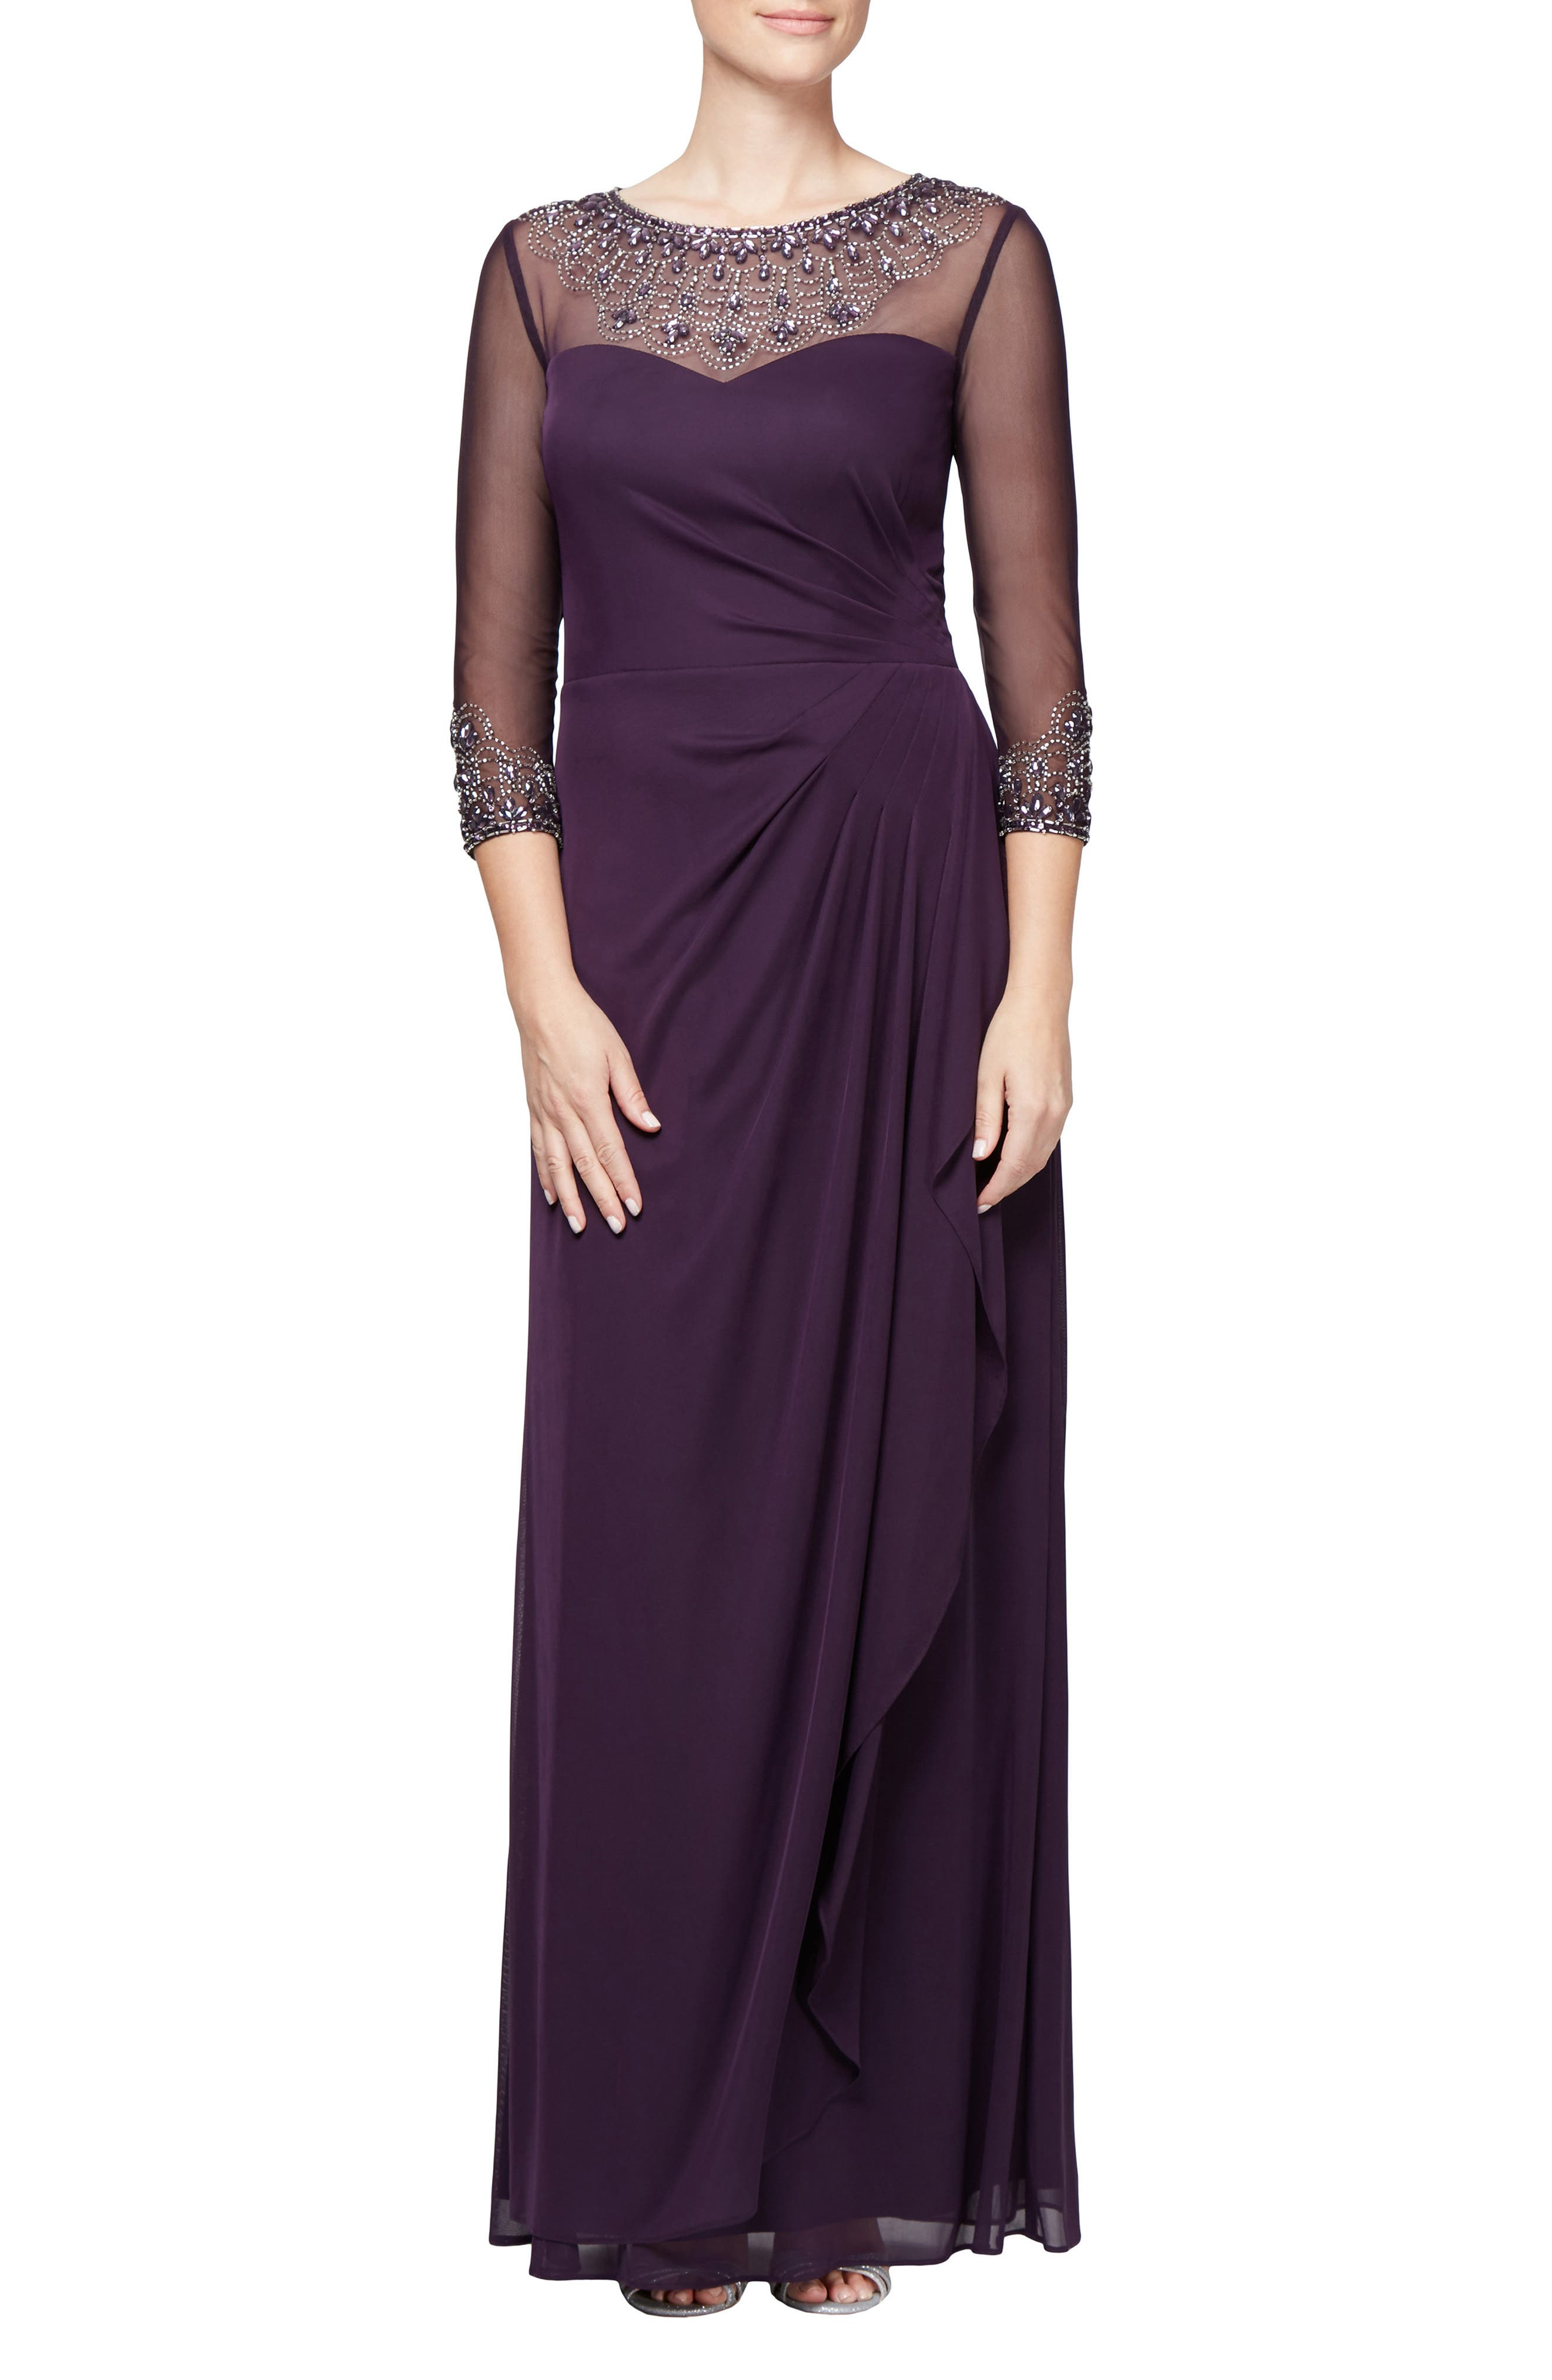 Alex Evenings Embellished A-Line Gown, 8 (similar to 1) - Purple